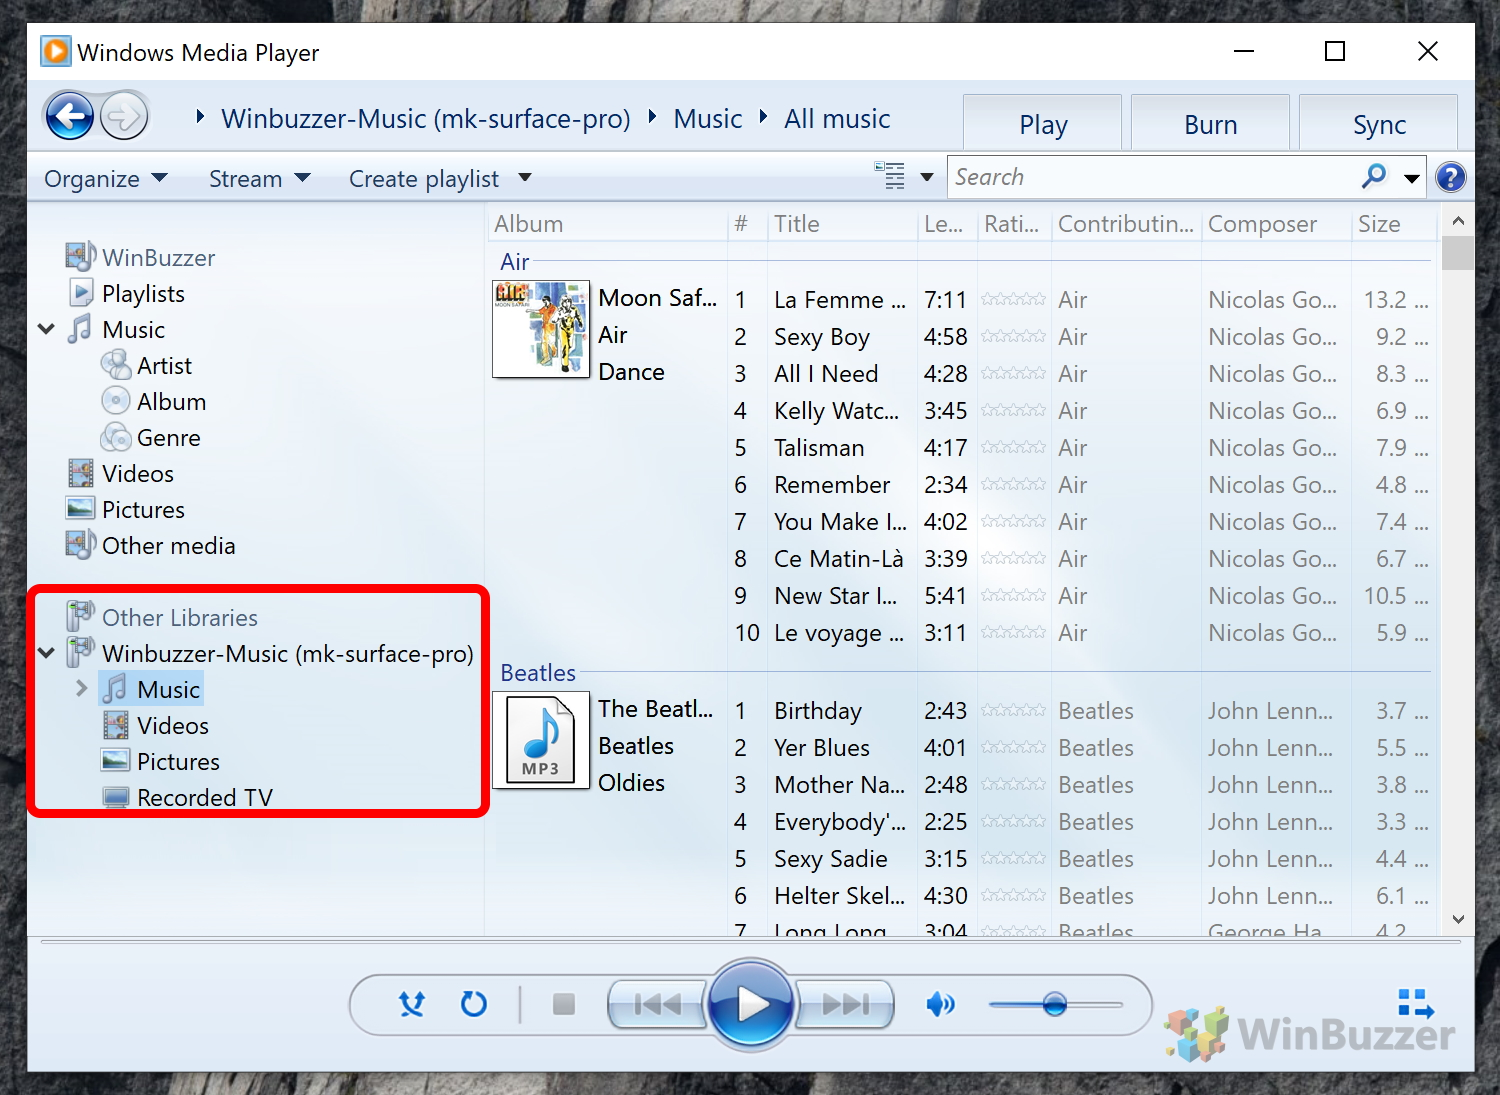 Windows 10 - Windows Media Player - Media Streaming Server - Music Tracks